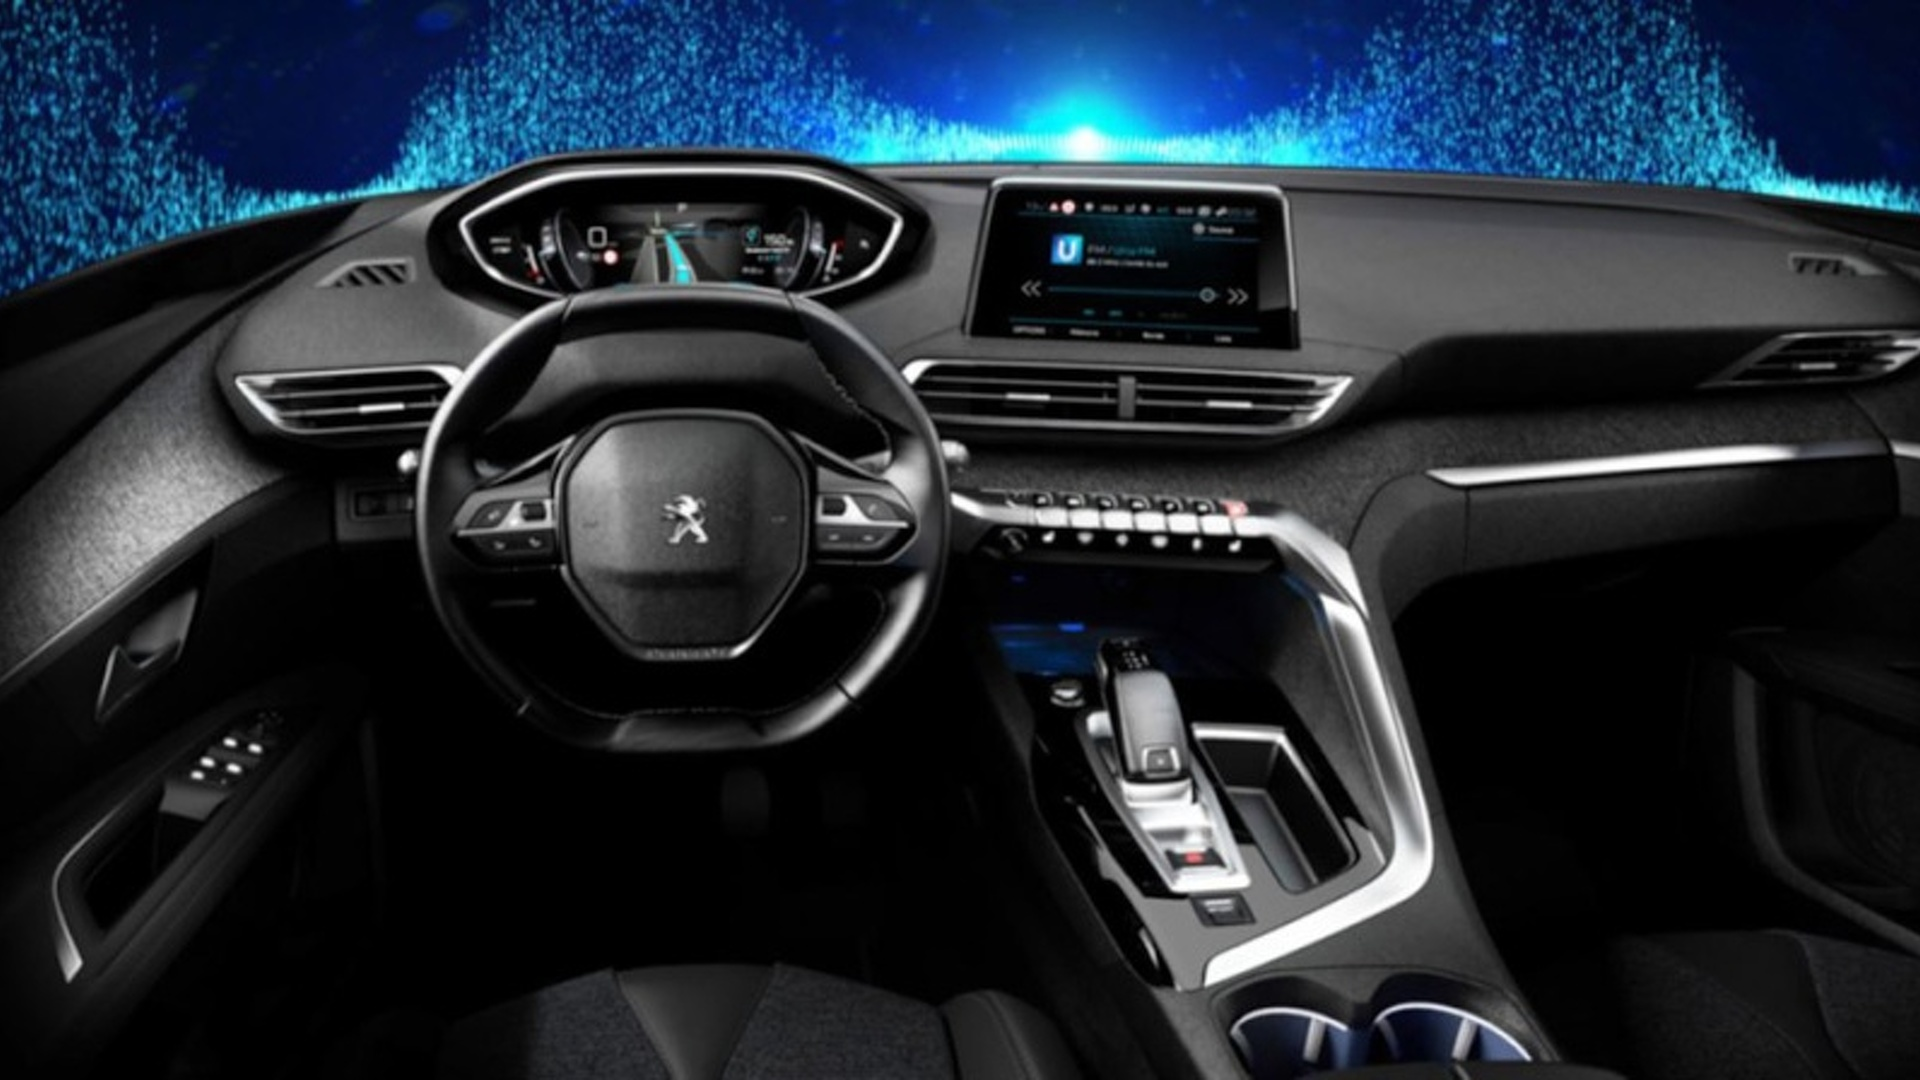 2017 Peugeot 3008 official interior pics leaked